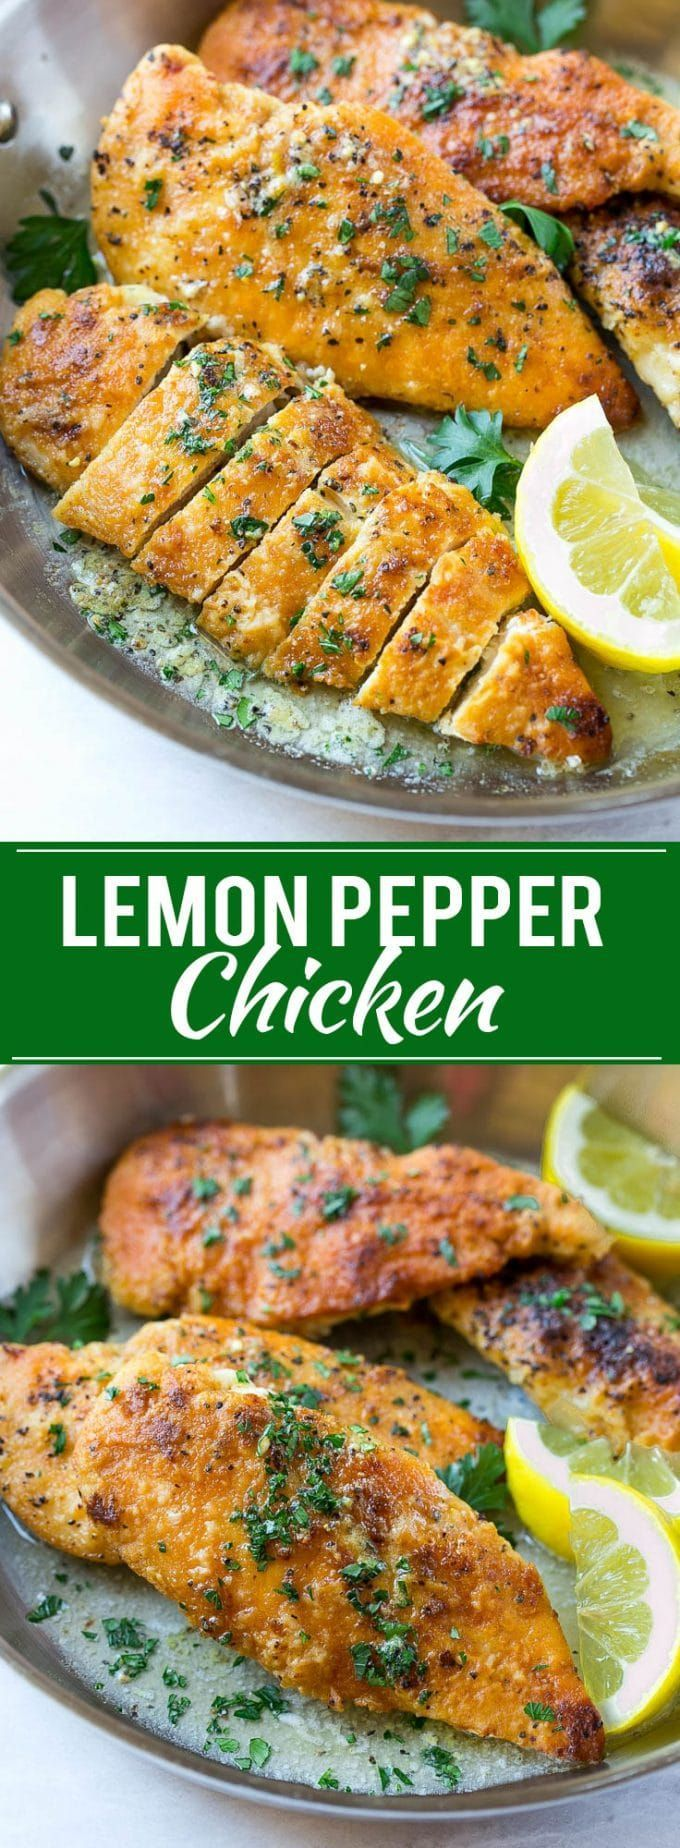 Lemon Pepper Chicken Recipe | Lemon Pepper | Easy Chicken Recipe | Chicken Dinner Recipe | Lemon Chicken